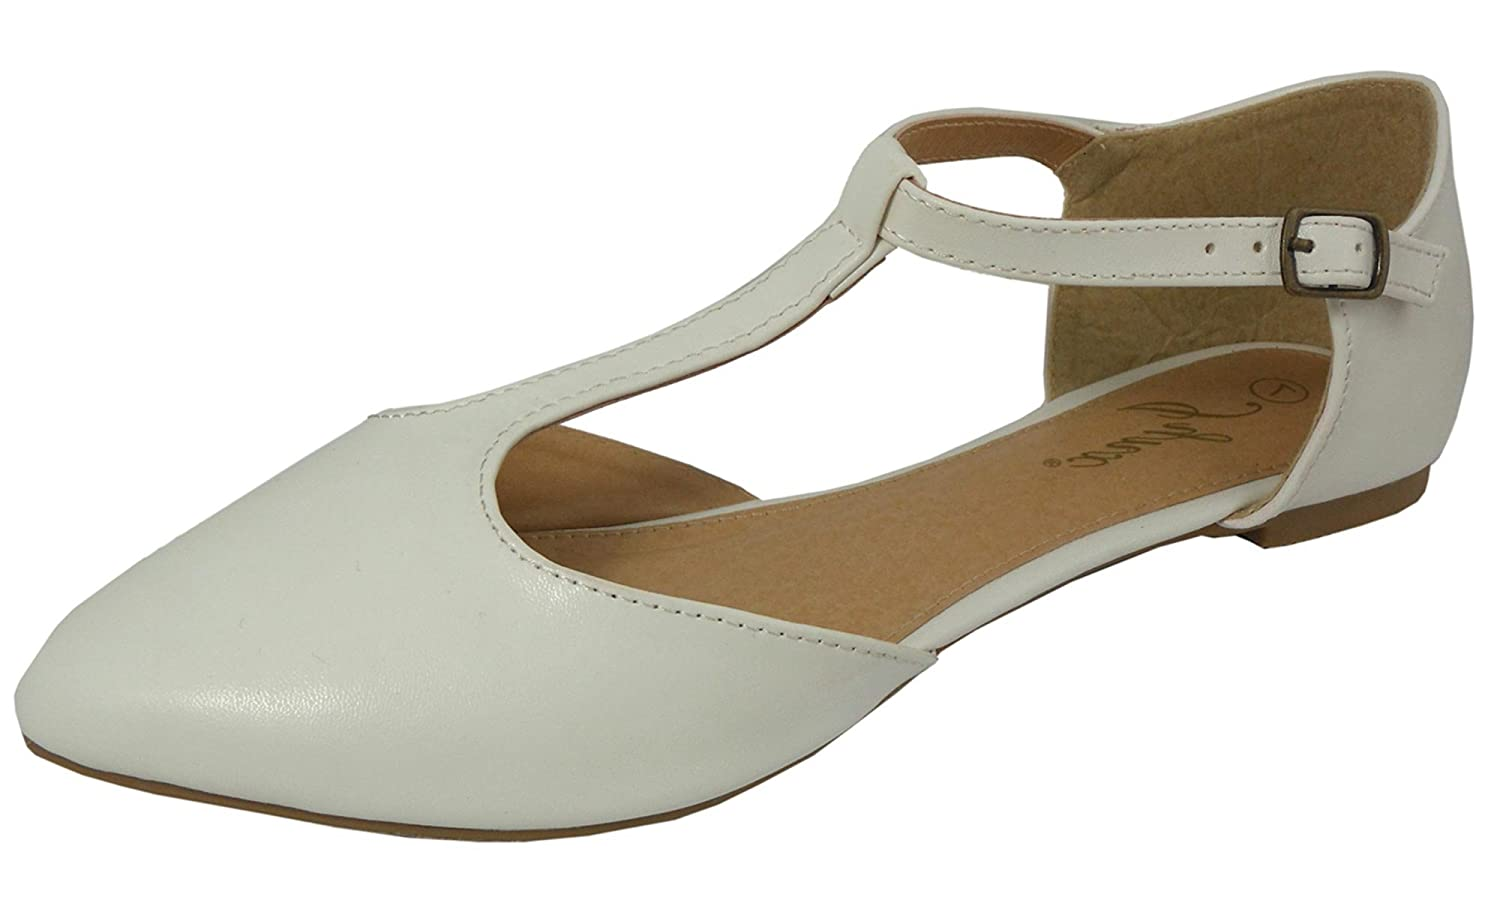 1920s Shoes UK – T-Bar, Oxfords, Flats Jynx Womens Mary Jane T-Strap Pointed Toe Ballet Flat $21.25 AT vintagedancer.com